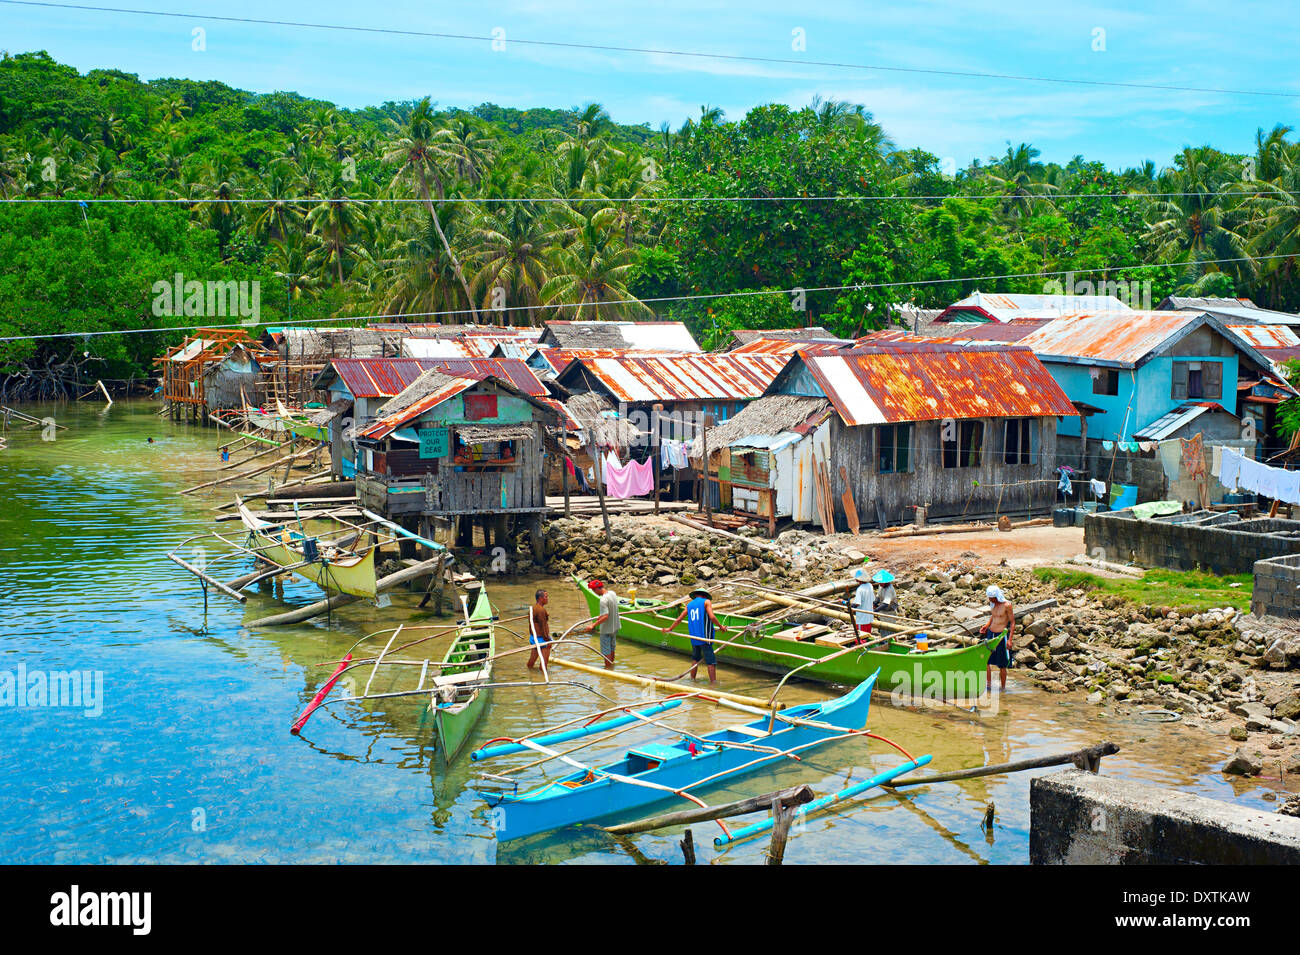 residential mobile home html with Stock Photo Coastal Fishing Village In Philippines About 800000 Fishermen Use 68154209 on Schema Branchement Cablage Contacteur in addition Stock Photo Aerial View Above Alta Plaza Park Pacific Heights San Francisco Landscape 13246771 furthermore Jaimes R together with S les additionally Stock Photo Coastal Fishing Village In Philippines About 800000 Fishermen Use 68154209.